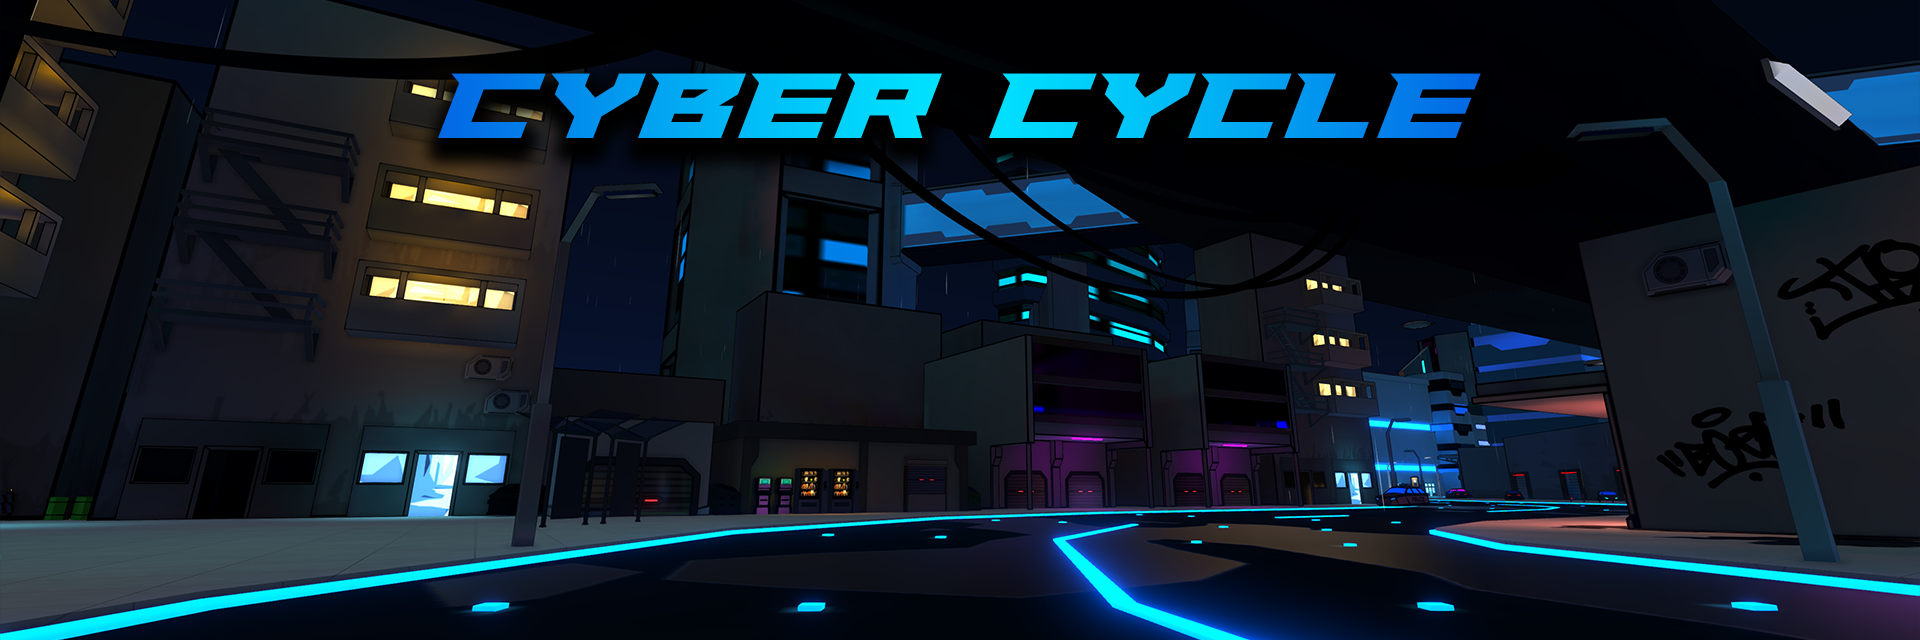 Cyber Cycle